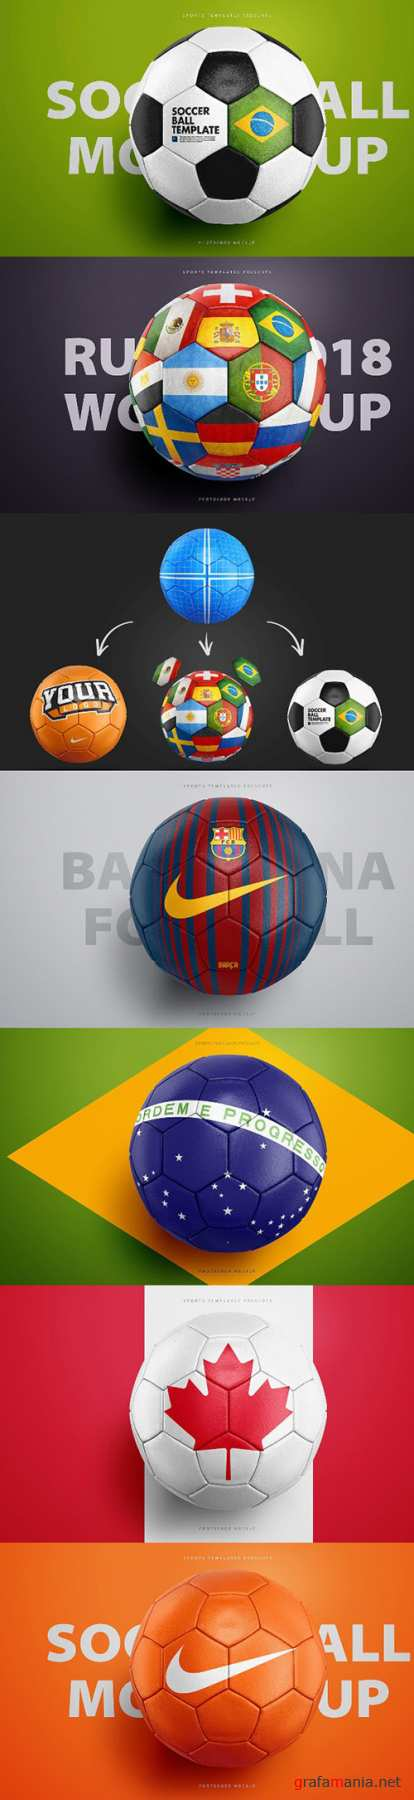 Football / Soccer Ball Photoshop Mockup PSD